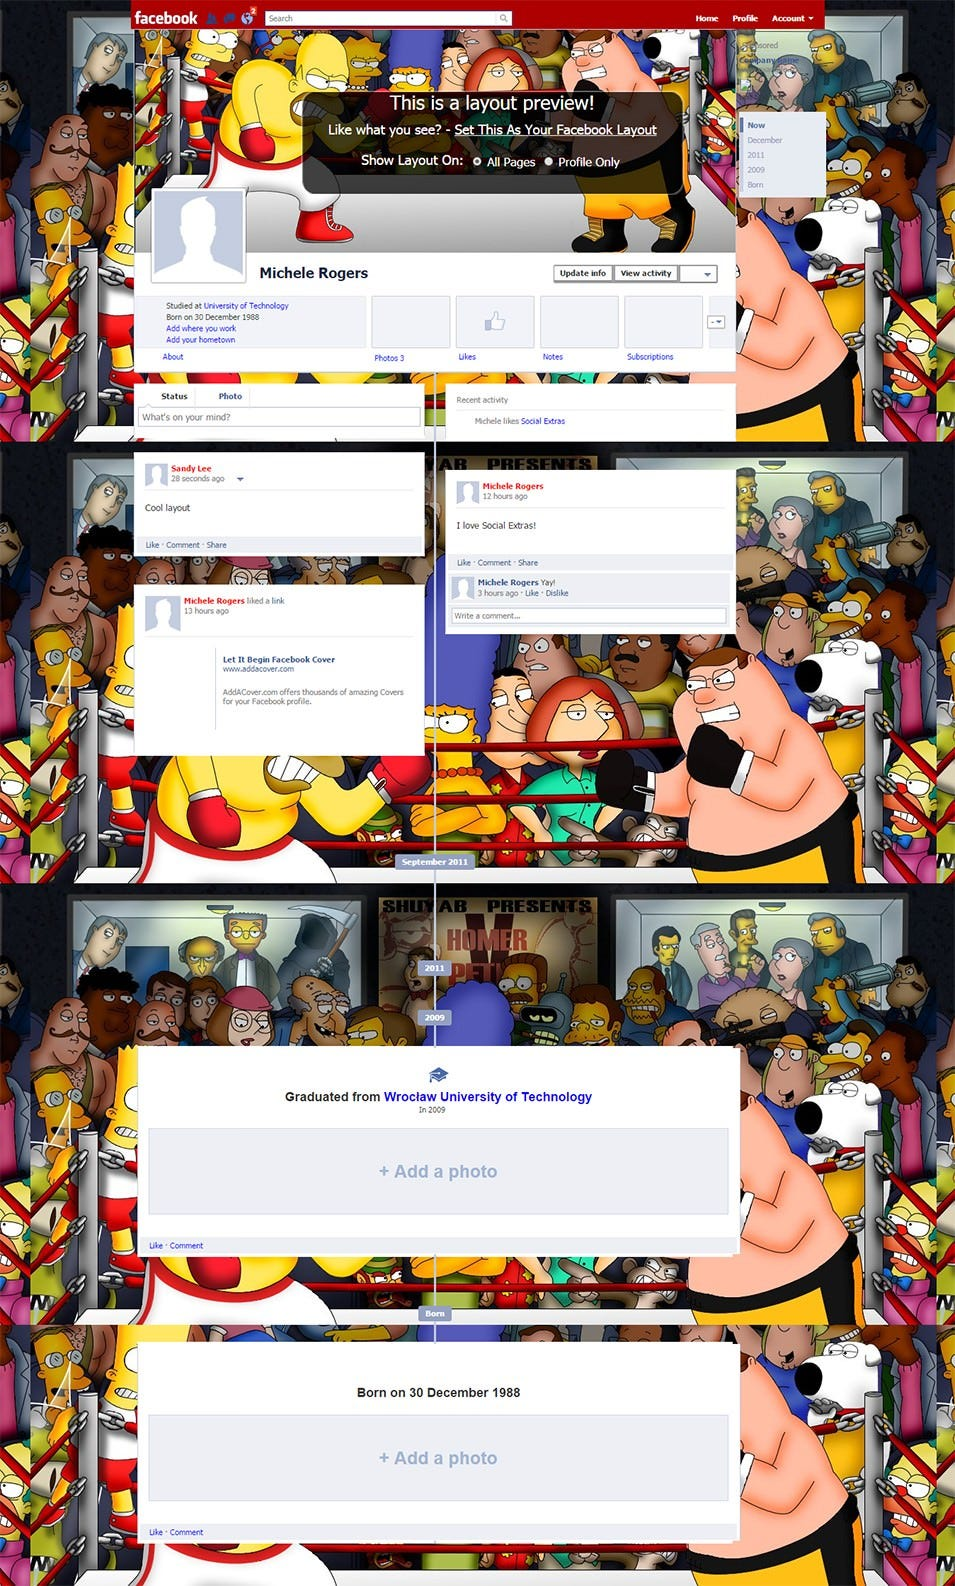 the simpsons vs family guy facebook layout preview